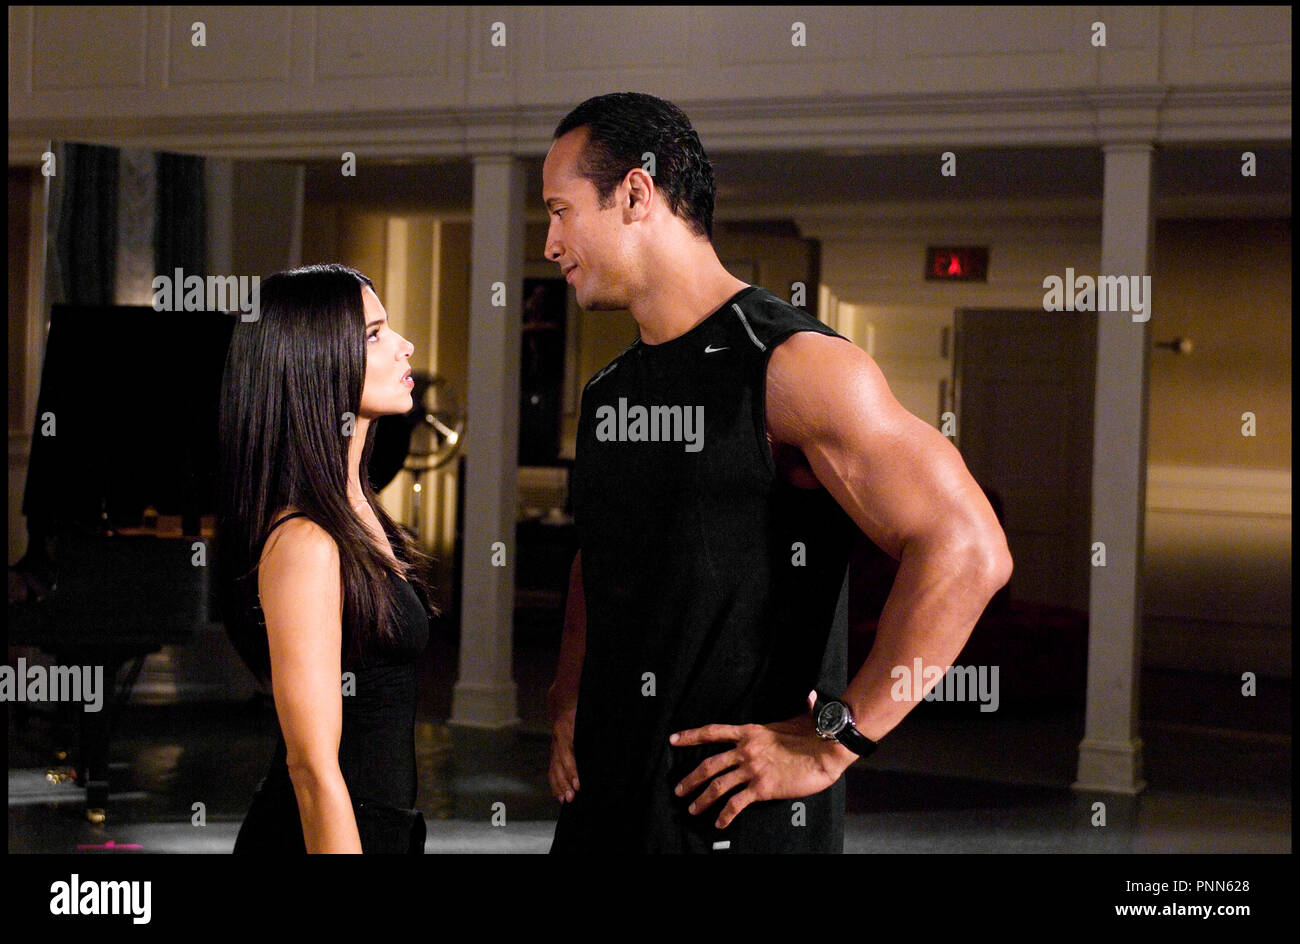 Pictures DR MAXI PAPA THE GAME PLAN De Andy Fickman 2007 USA Avec Roselyn Sanchez Et Dwayne The Rock Johnson Couple Mixte Maillot Nike